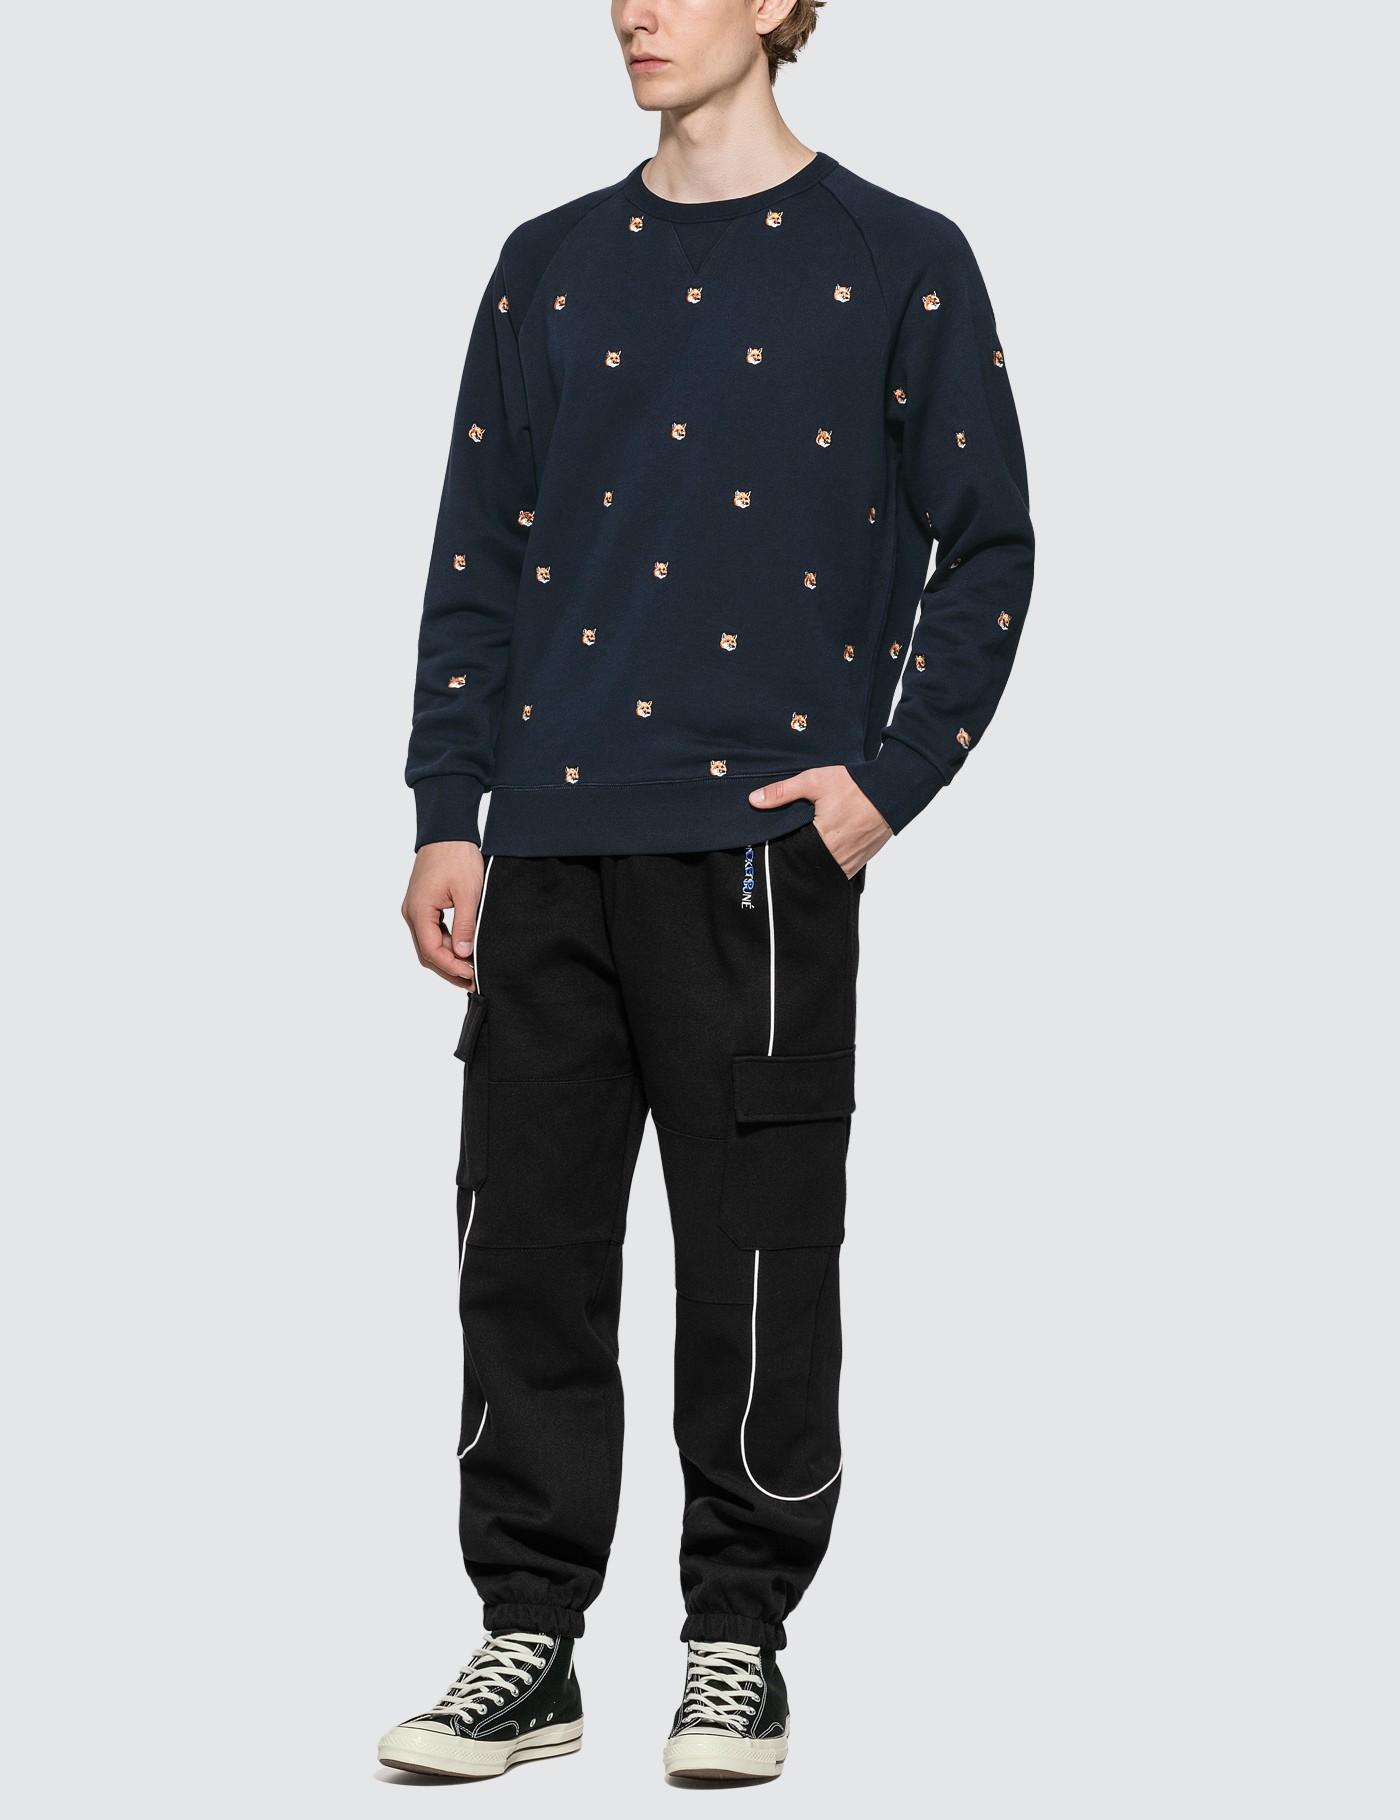 MAISON KITSUNE All-over Fox Head Embroidery Sweatshirt